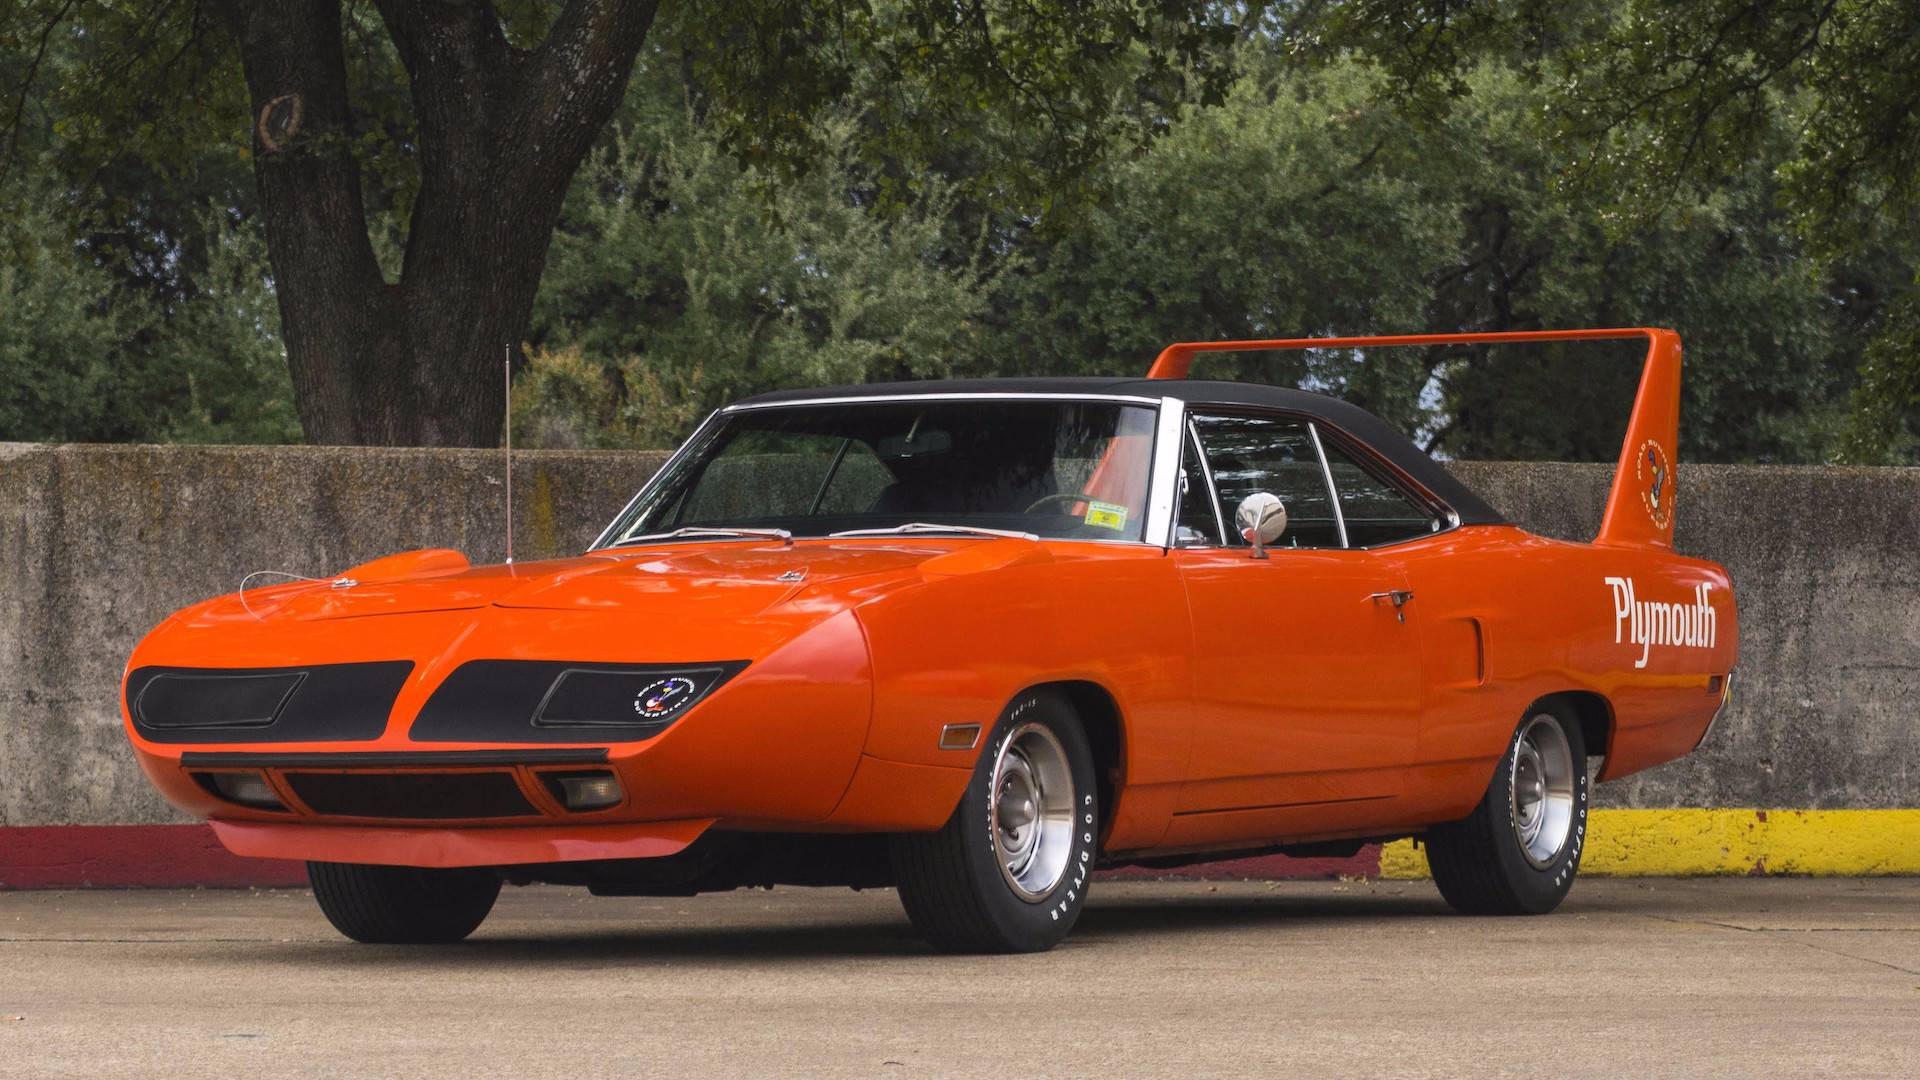 Unrestored Plymouth Superbird ...